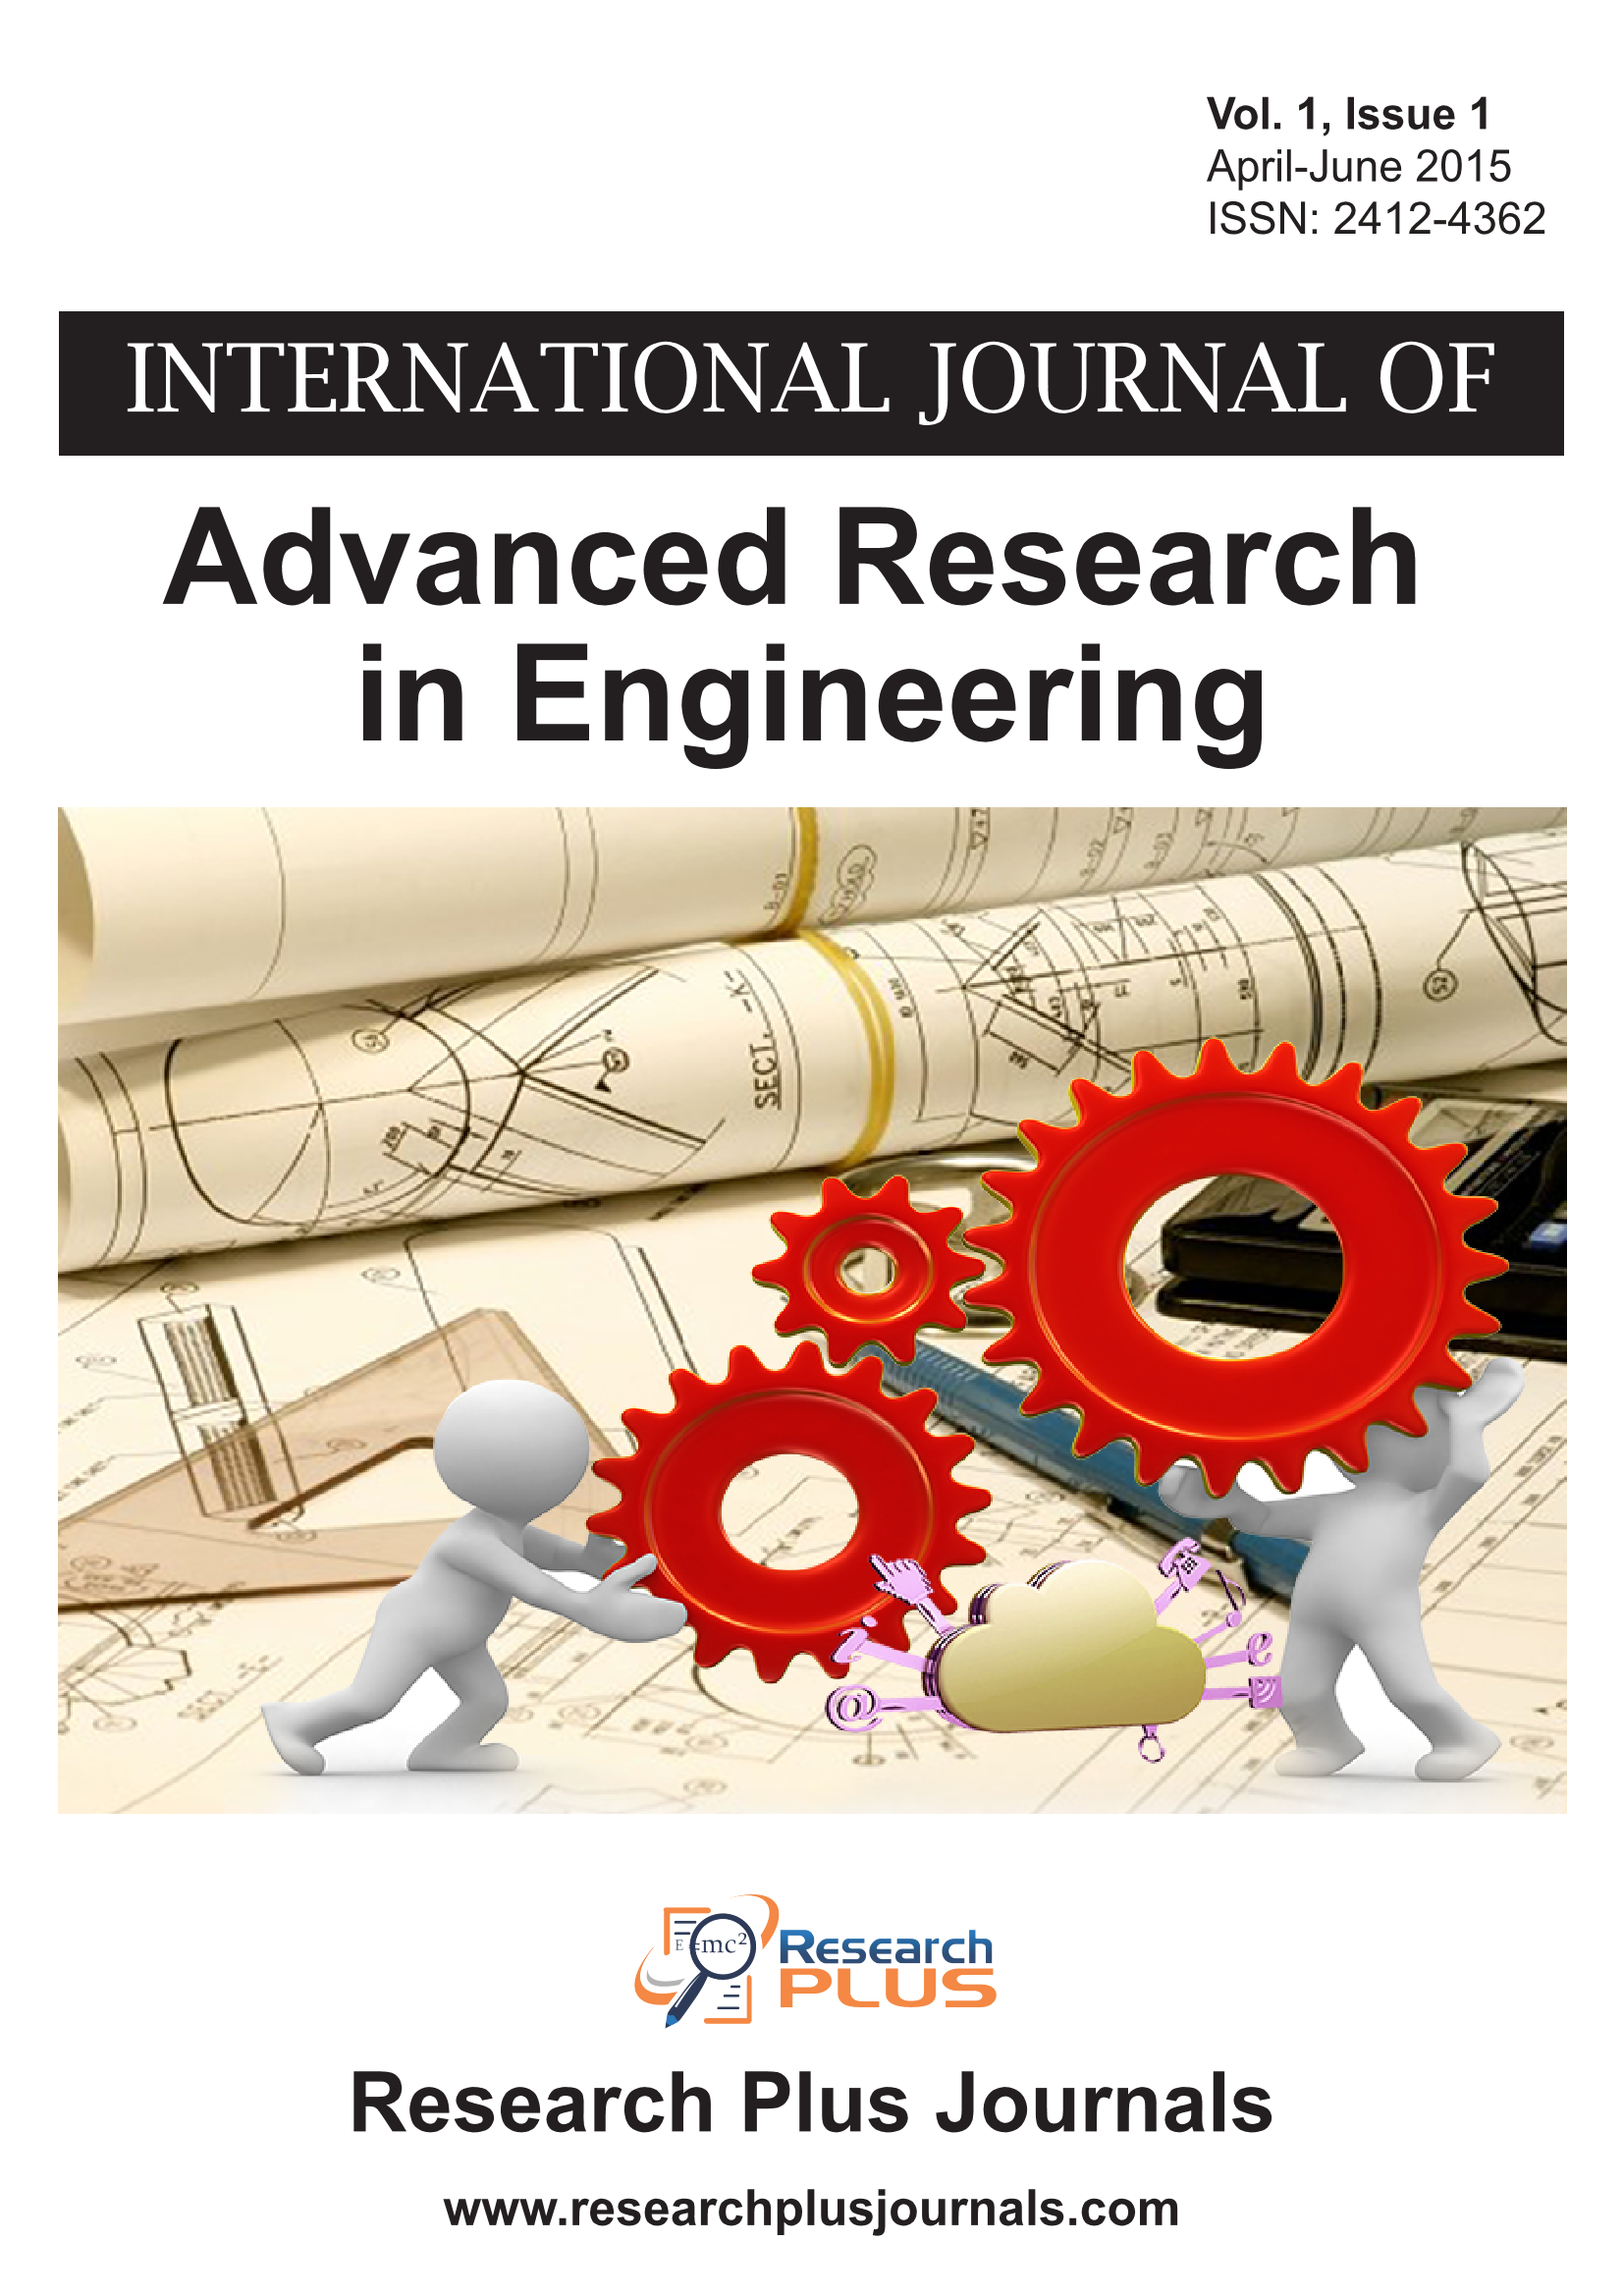 Volume 1, Issue 1, International Journal of Advanced Research in Engineering (IJARE)  (Online ISSN 2412-4362)